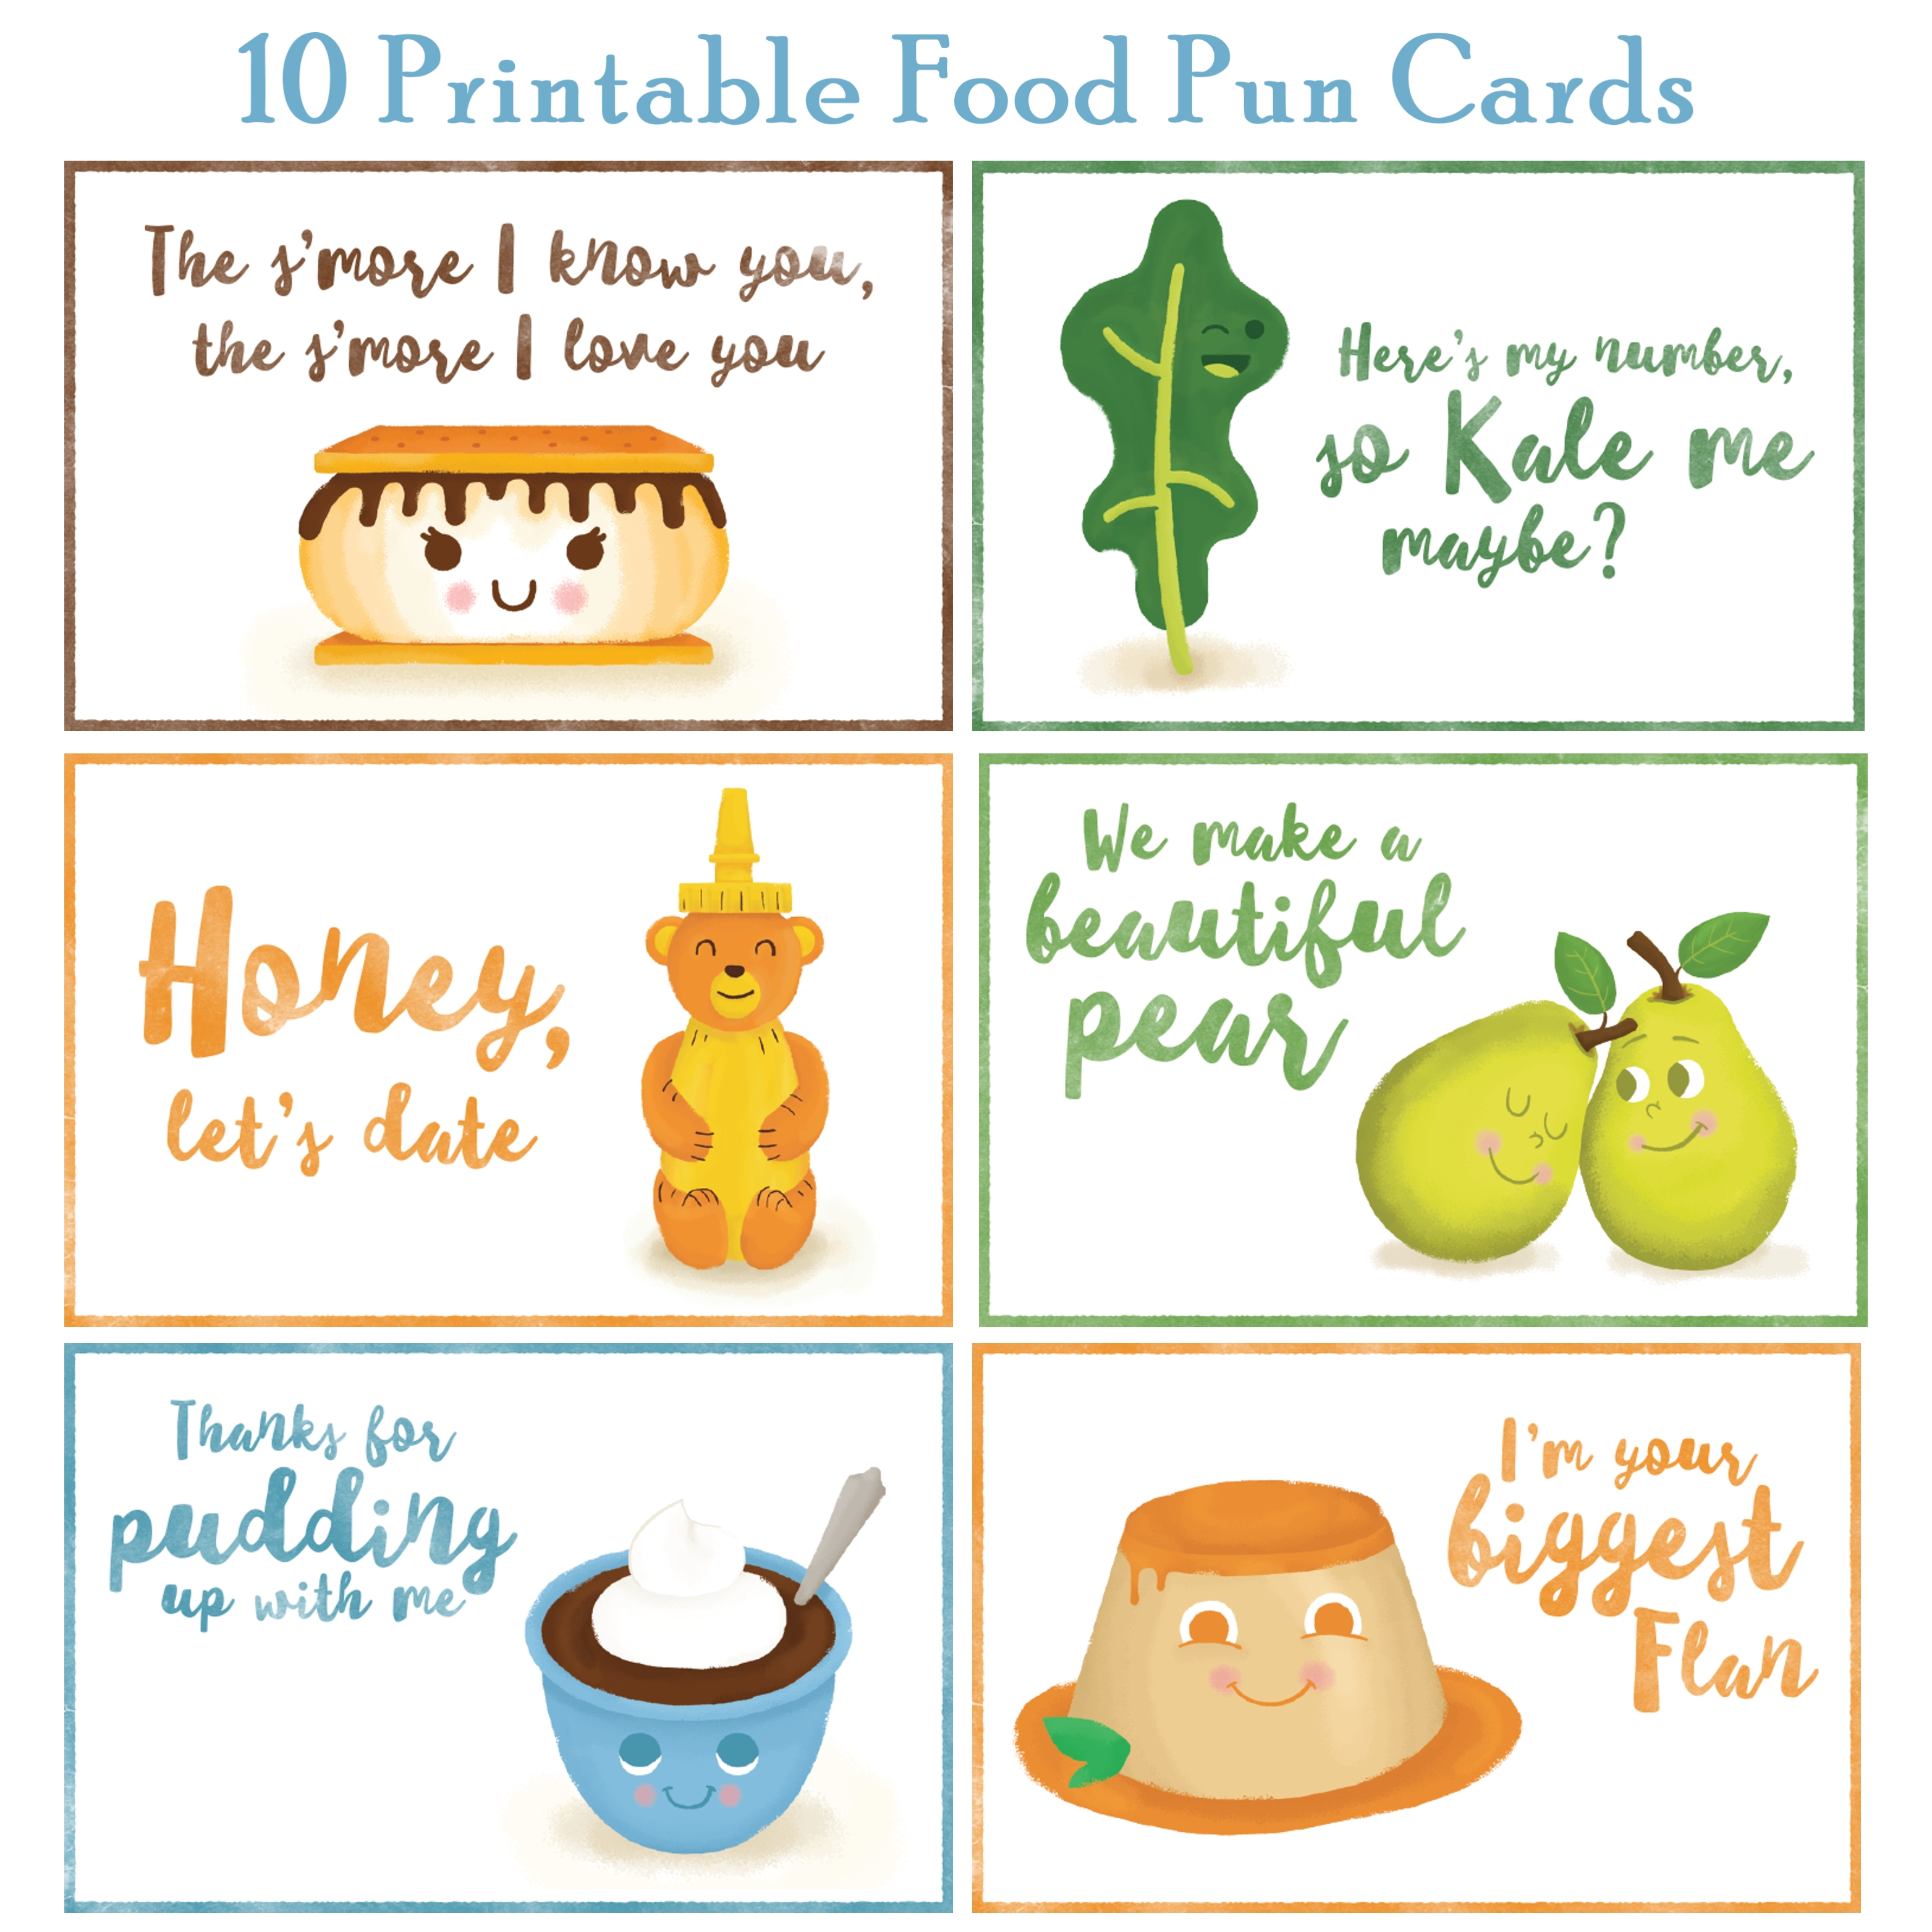 10 Printable Food Pun Cards Printables 4 Mom